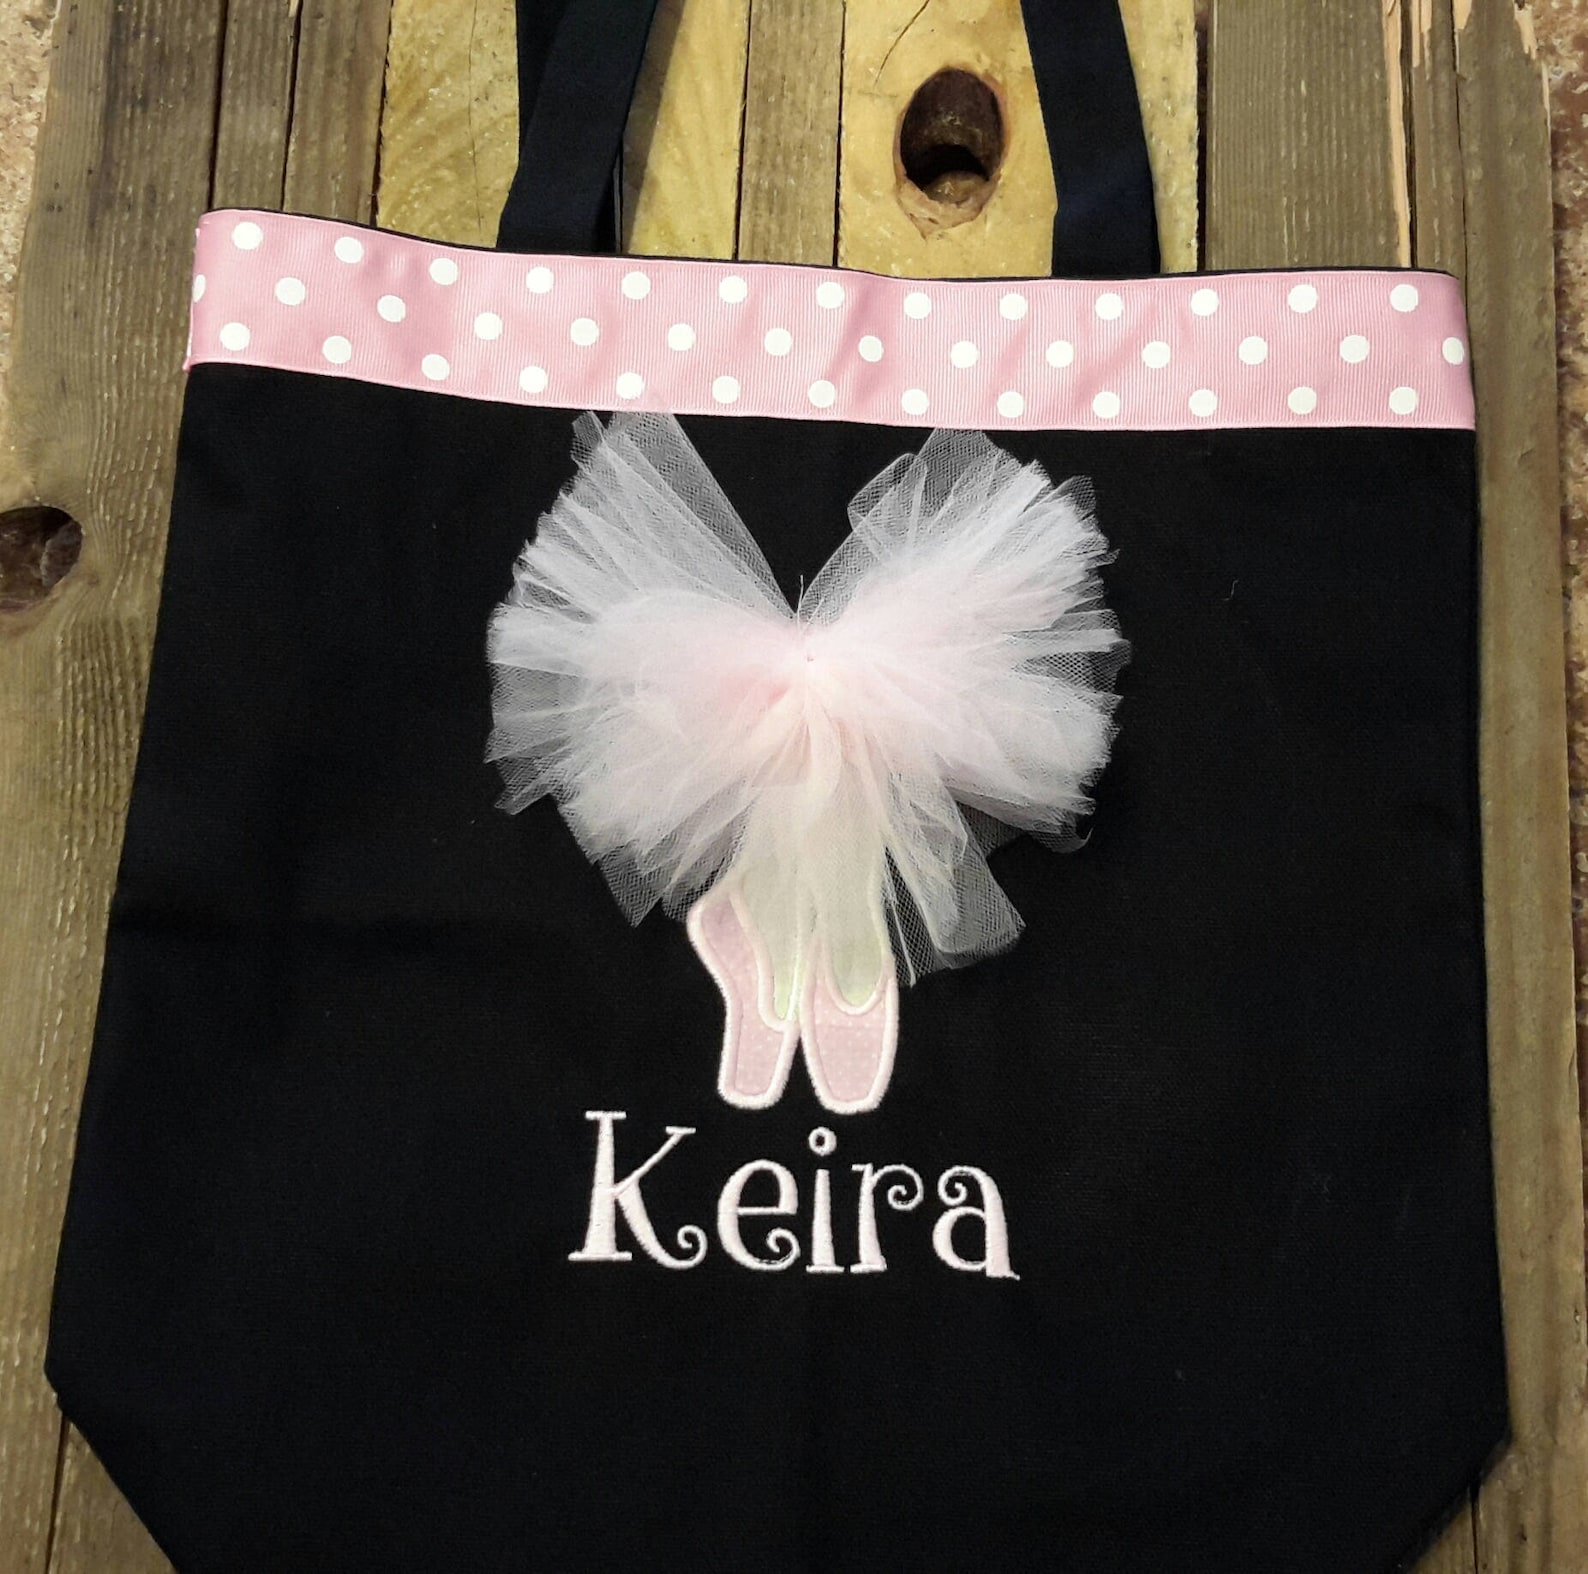 dance bag,personalized monogrammed dance bag,ballet bag, personalized ballet bag, girl dance bag